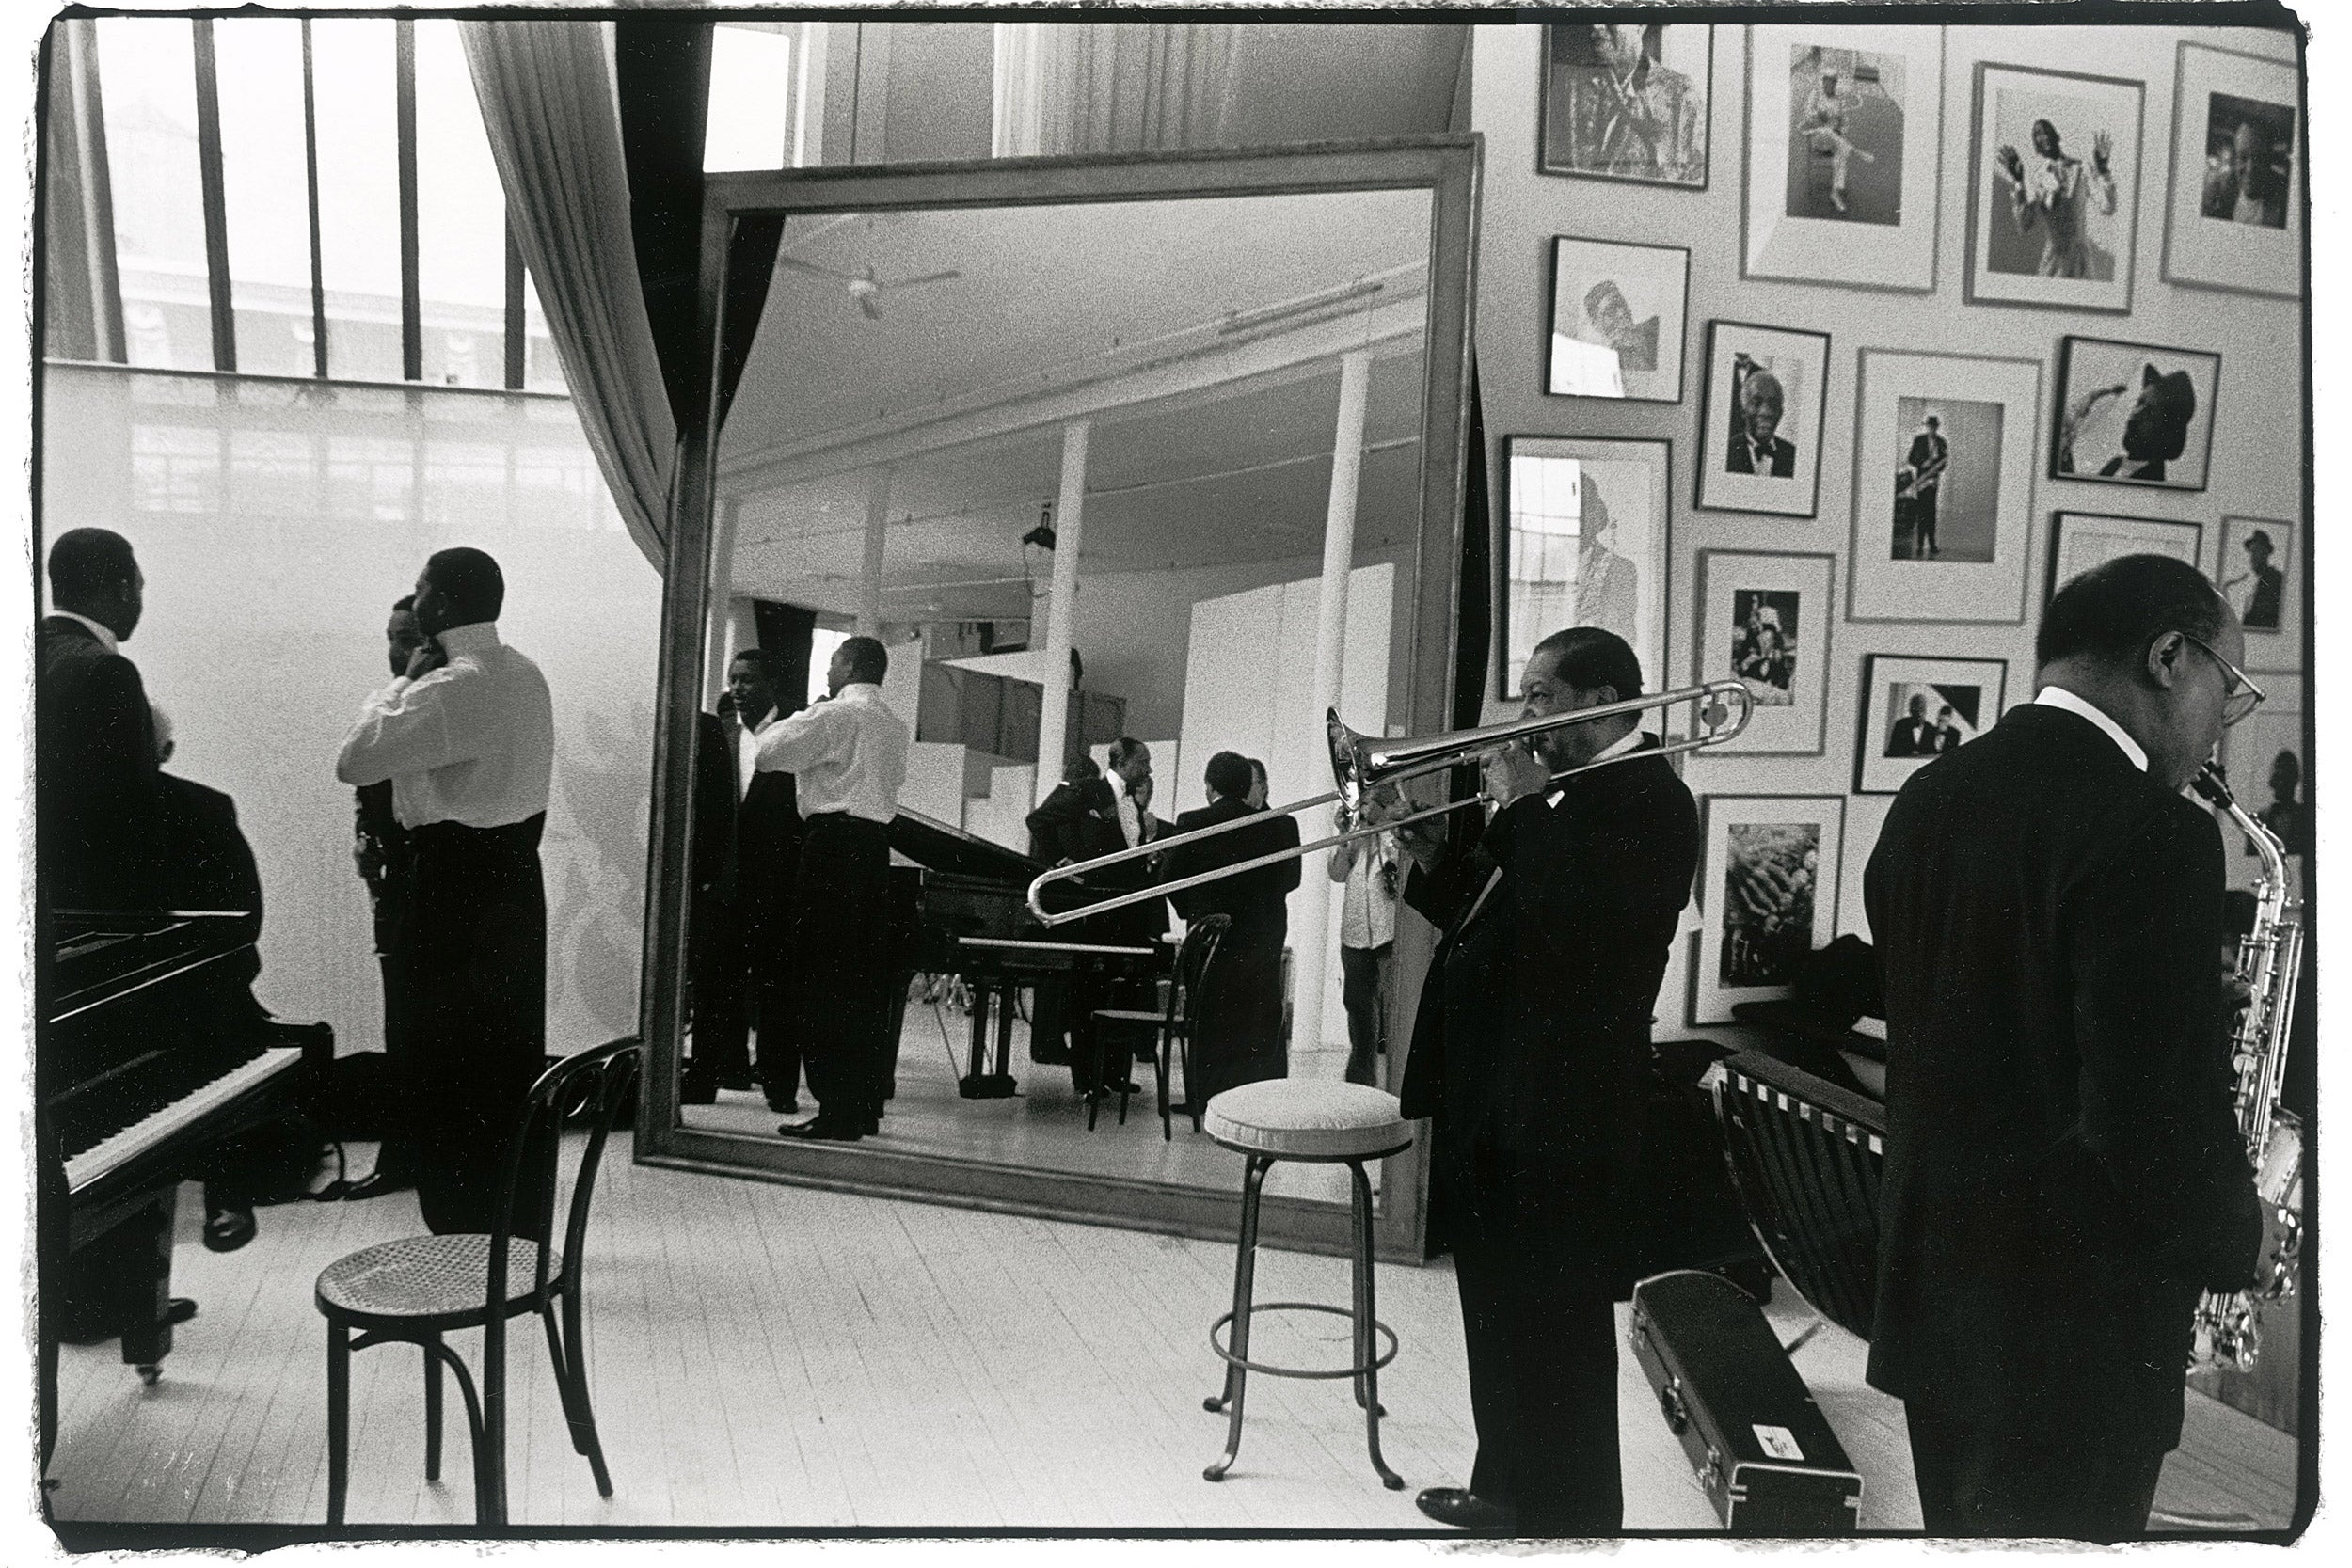 Lincoln Center room with musicians